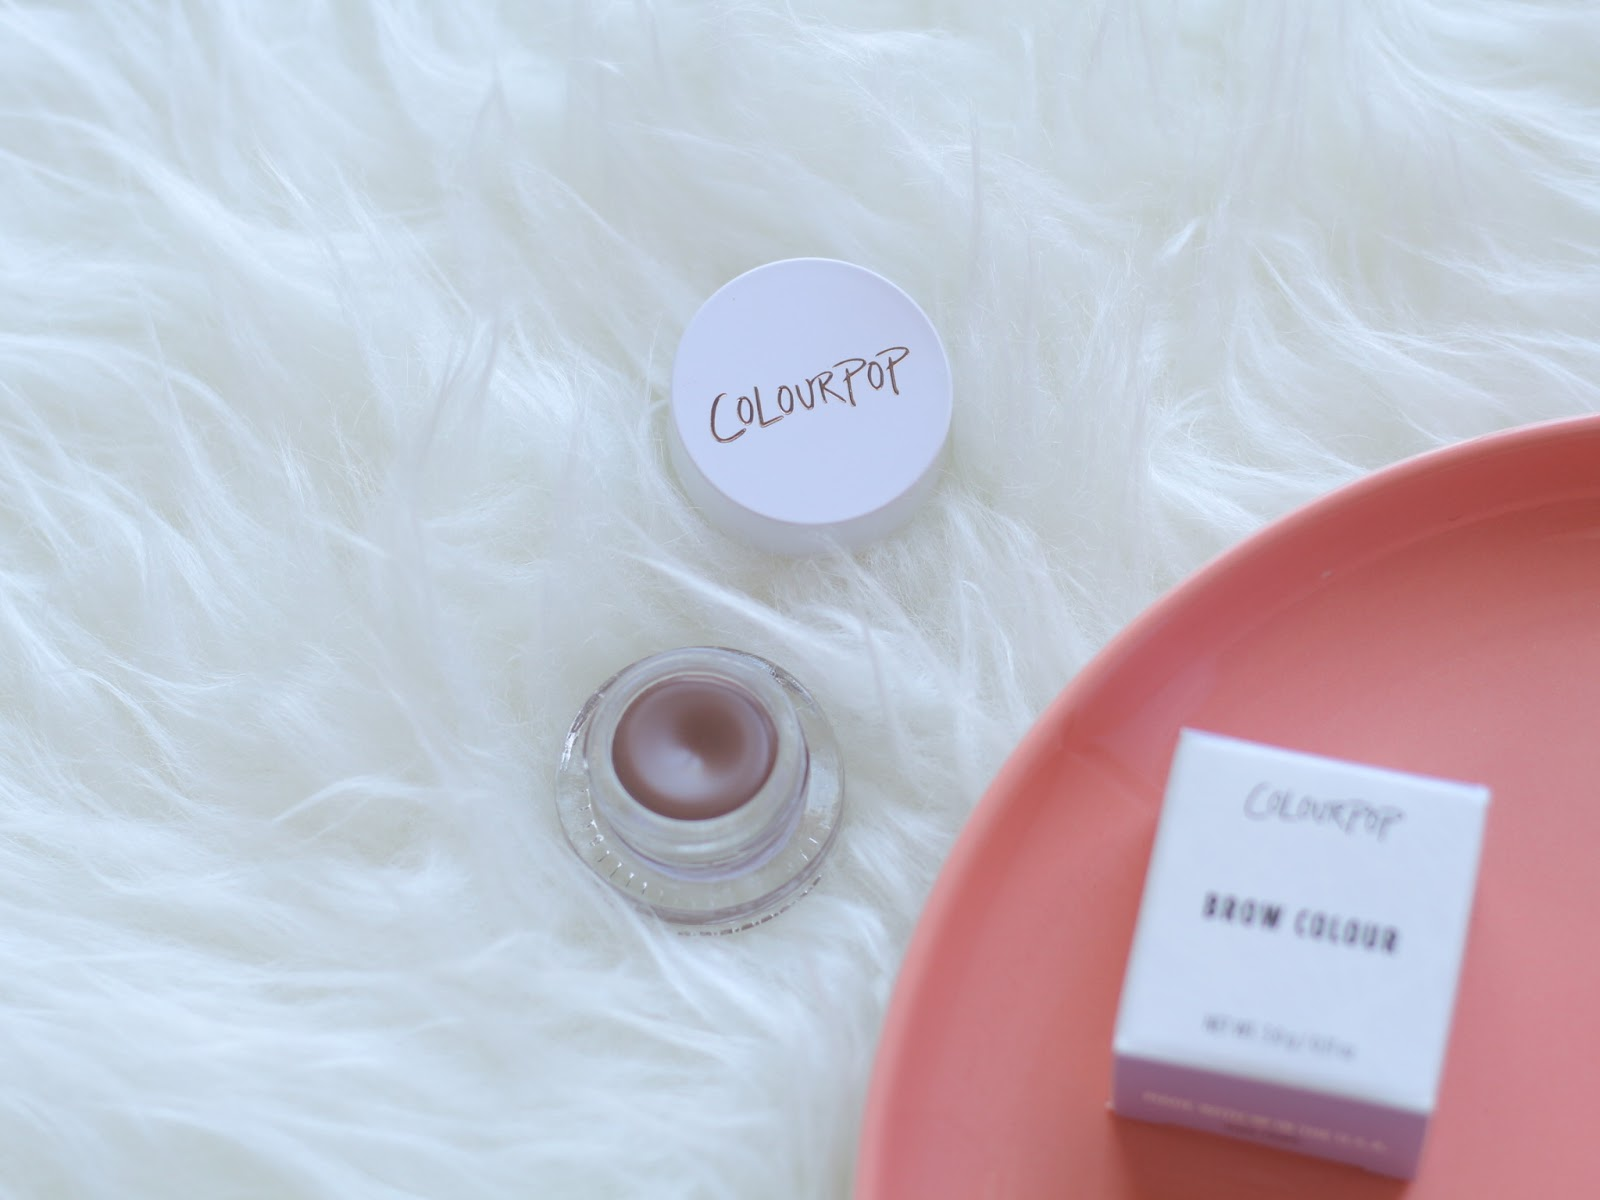 Colourpop Brow Colour Dope Taupe Review Makeup in Manila